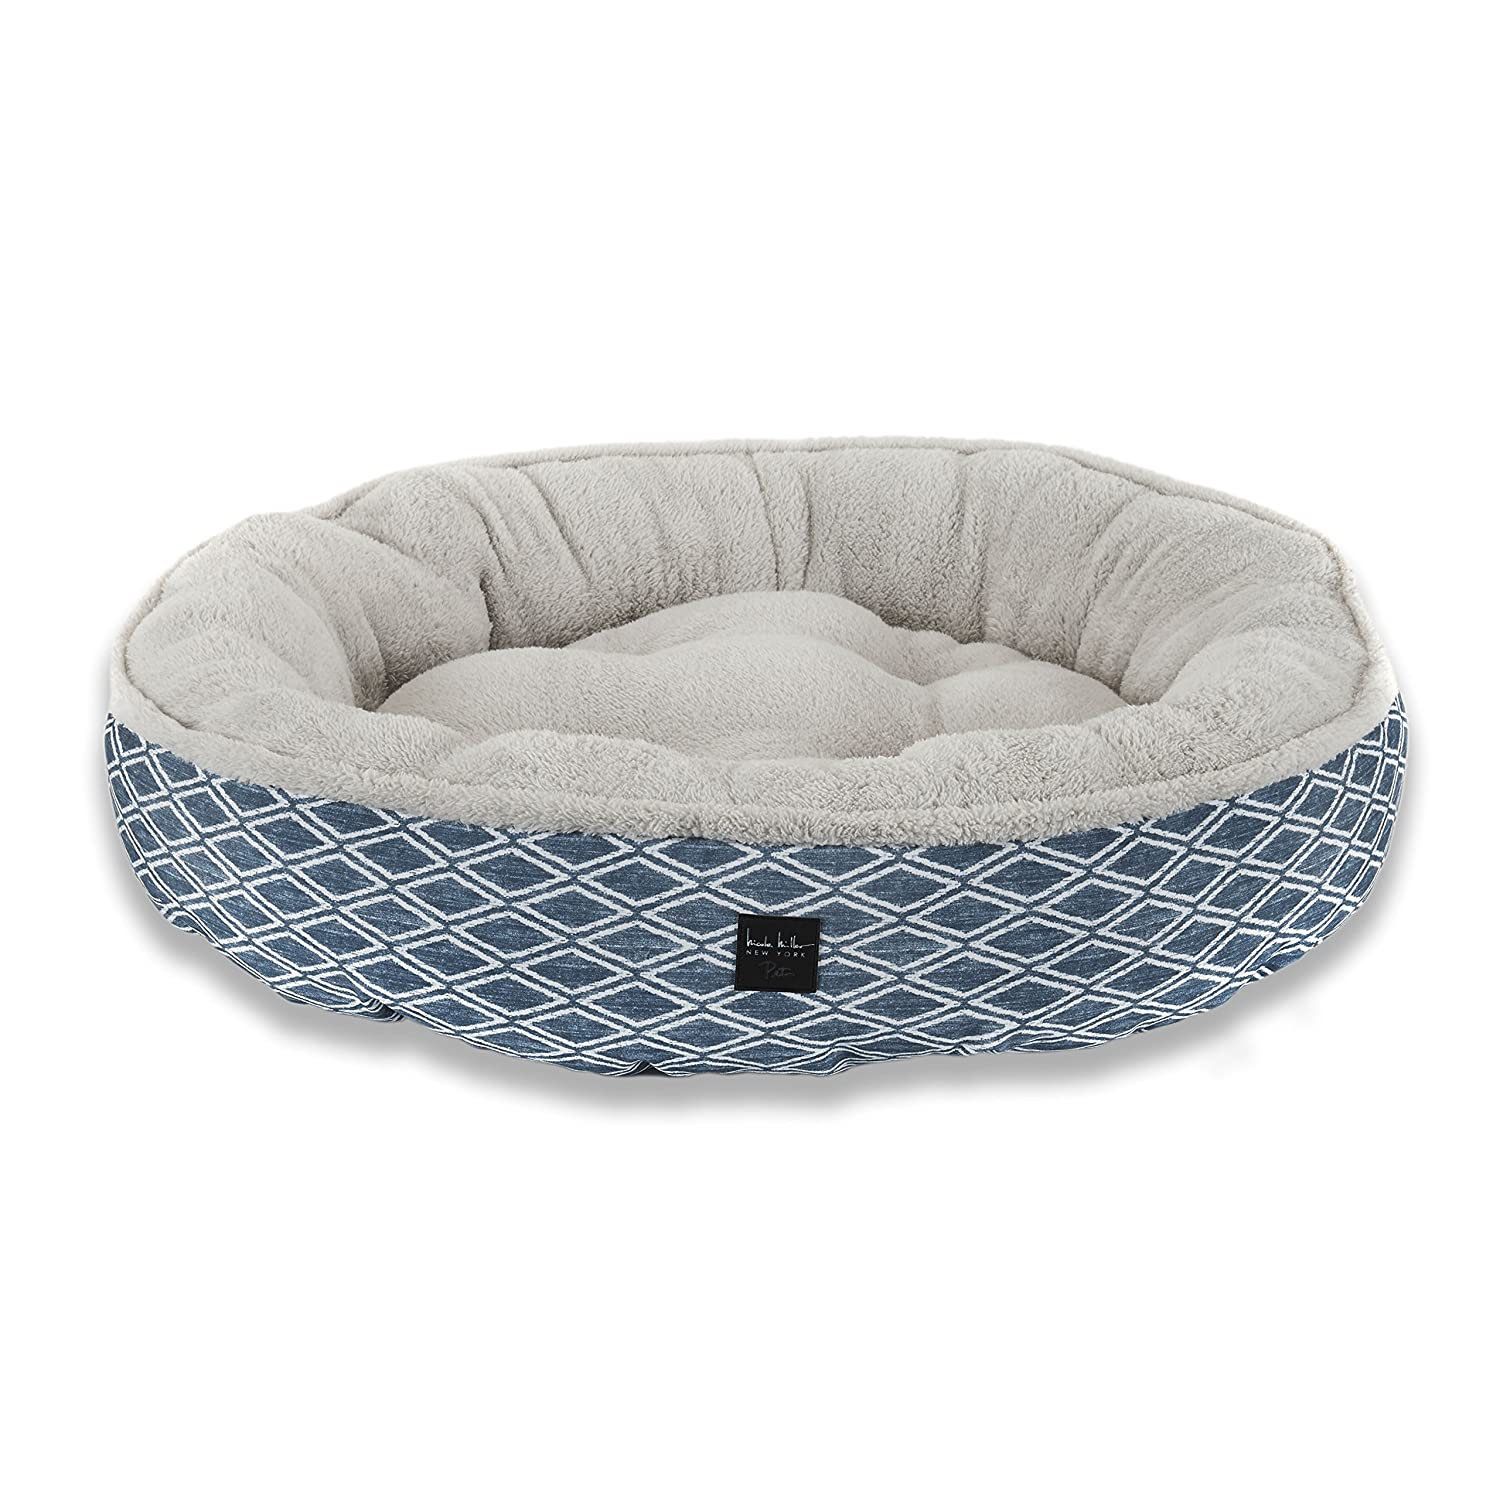 bluee Diamond 30 Inch RoundHome Dynamix HD119444 Nicole Miller Comfy Pooch Pet Bed, 30 Inch Round, Teal Polkadots